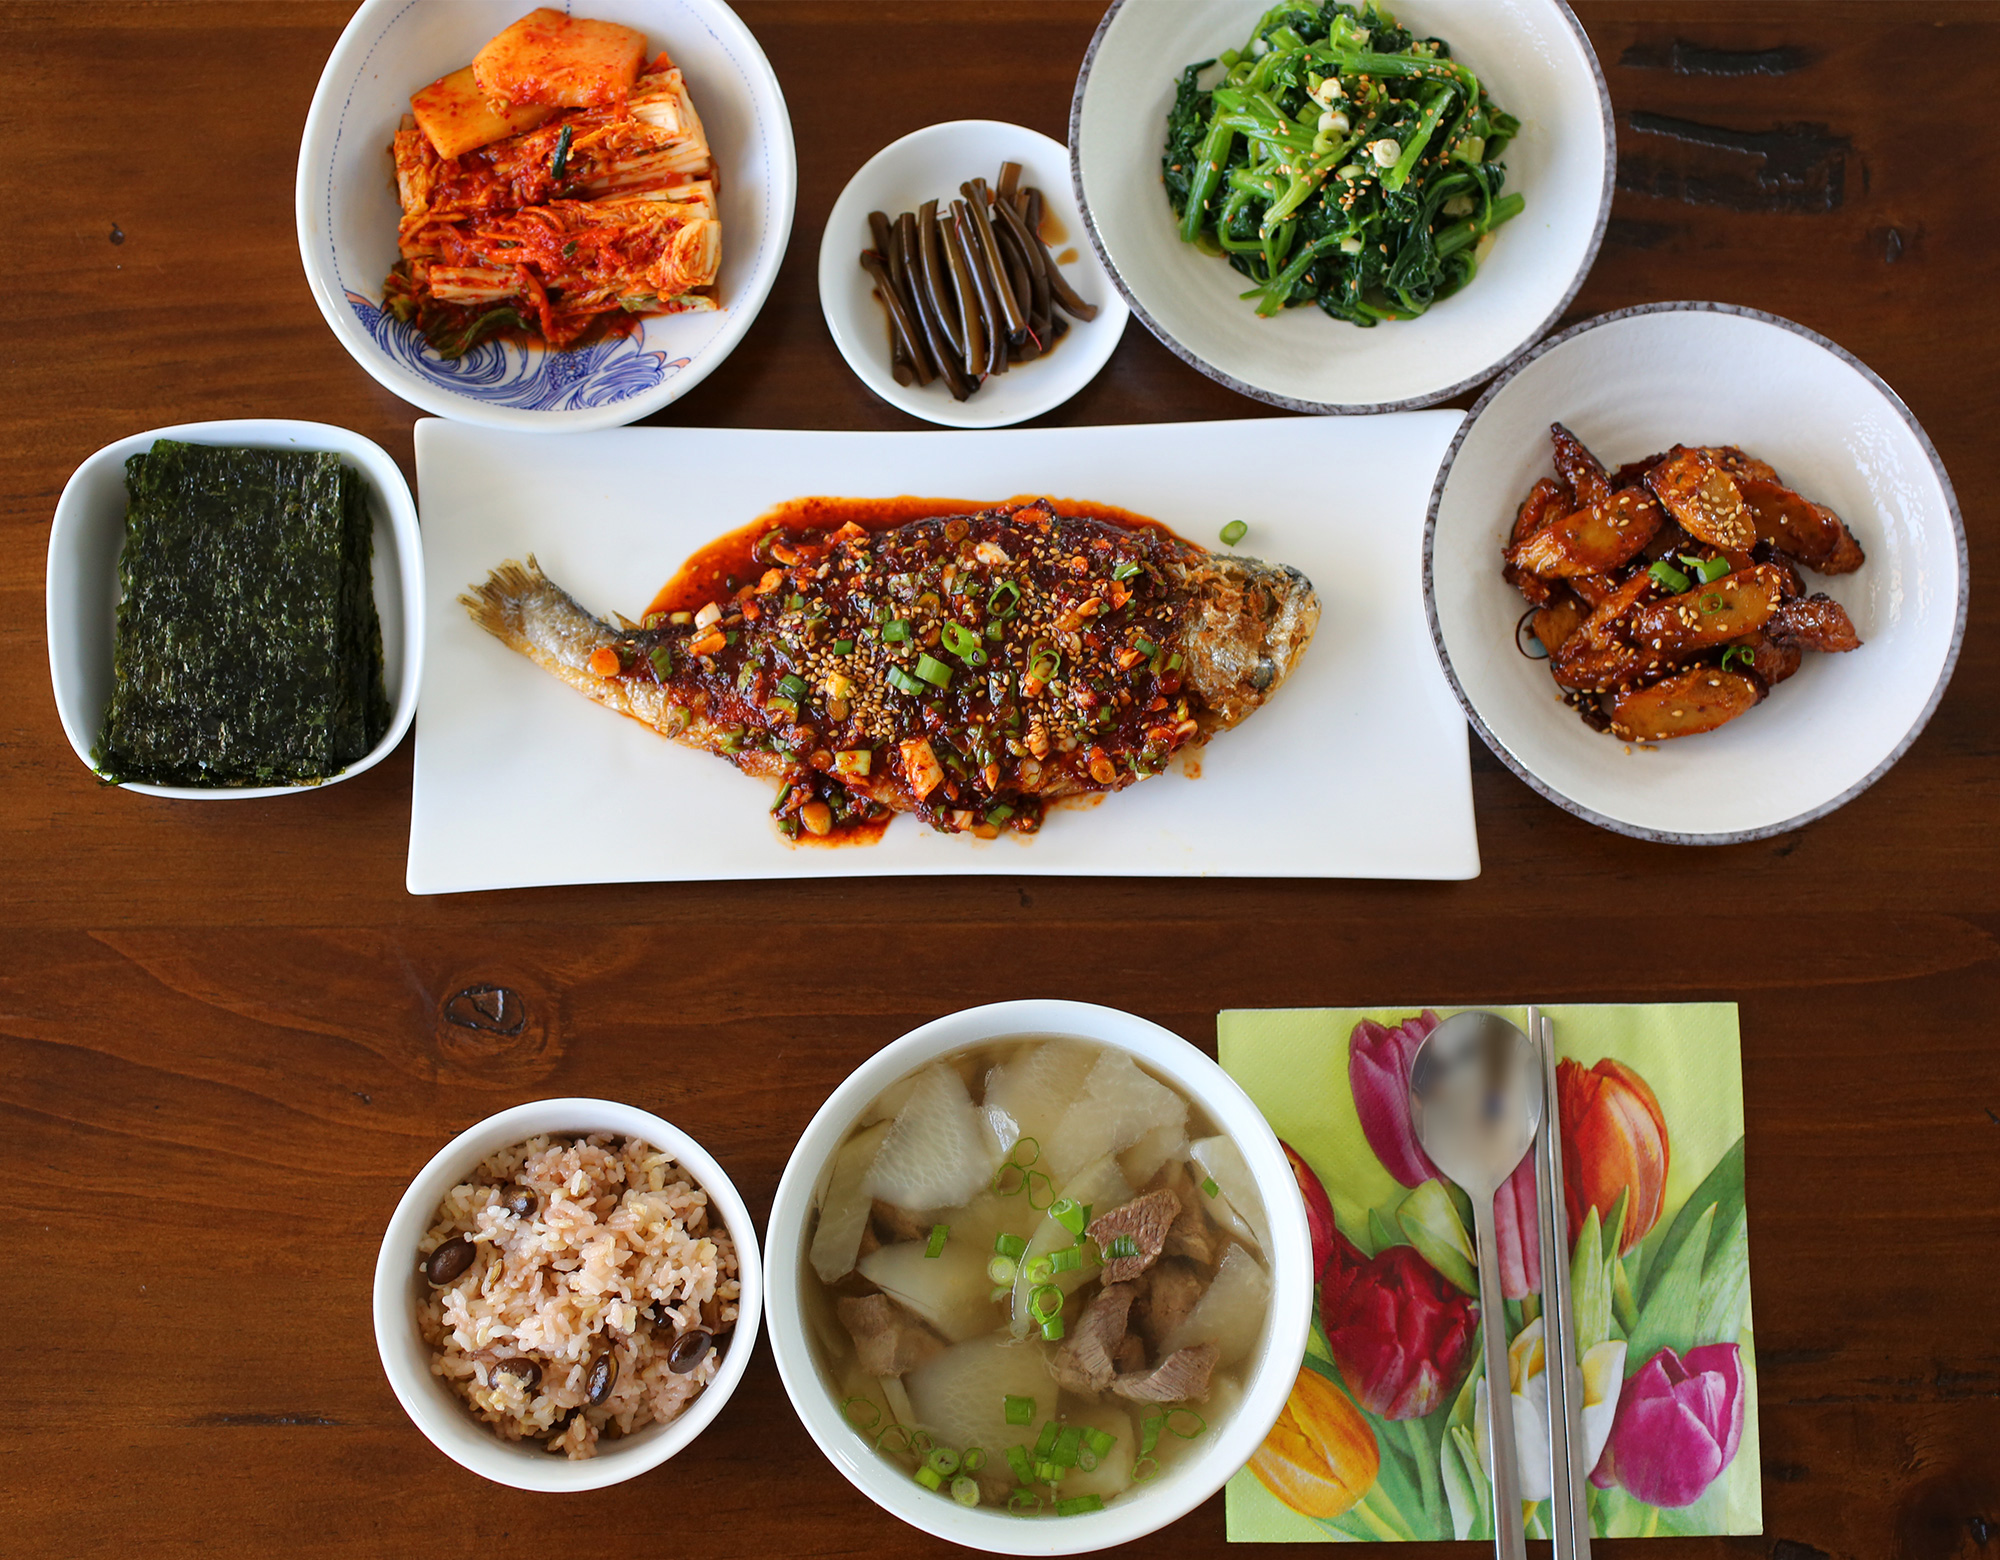 catering buffet set up diagram with inputs and outputs of photosynthesis process a typical korean homestyle table setting maangchi